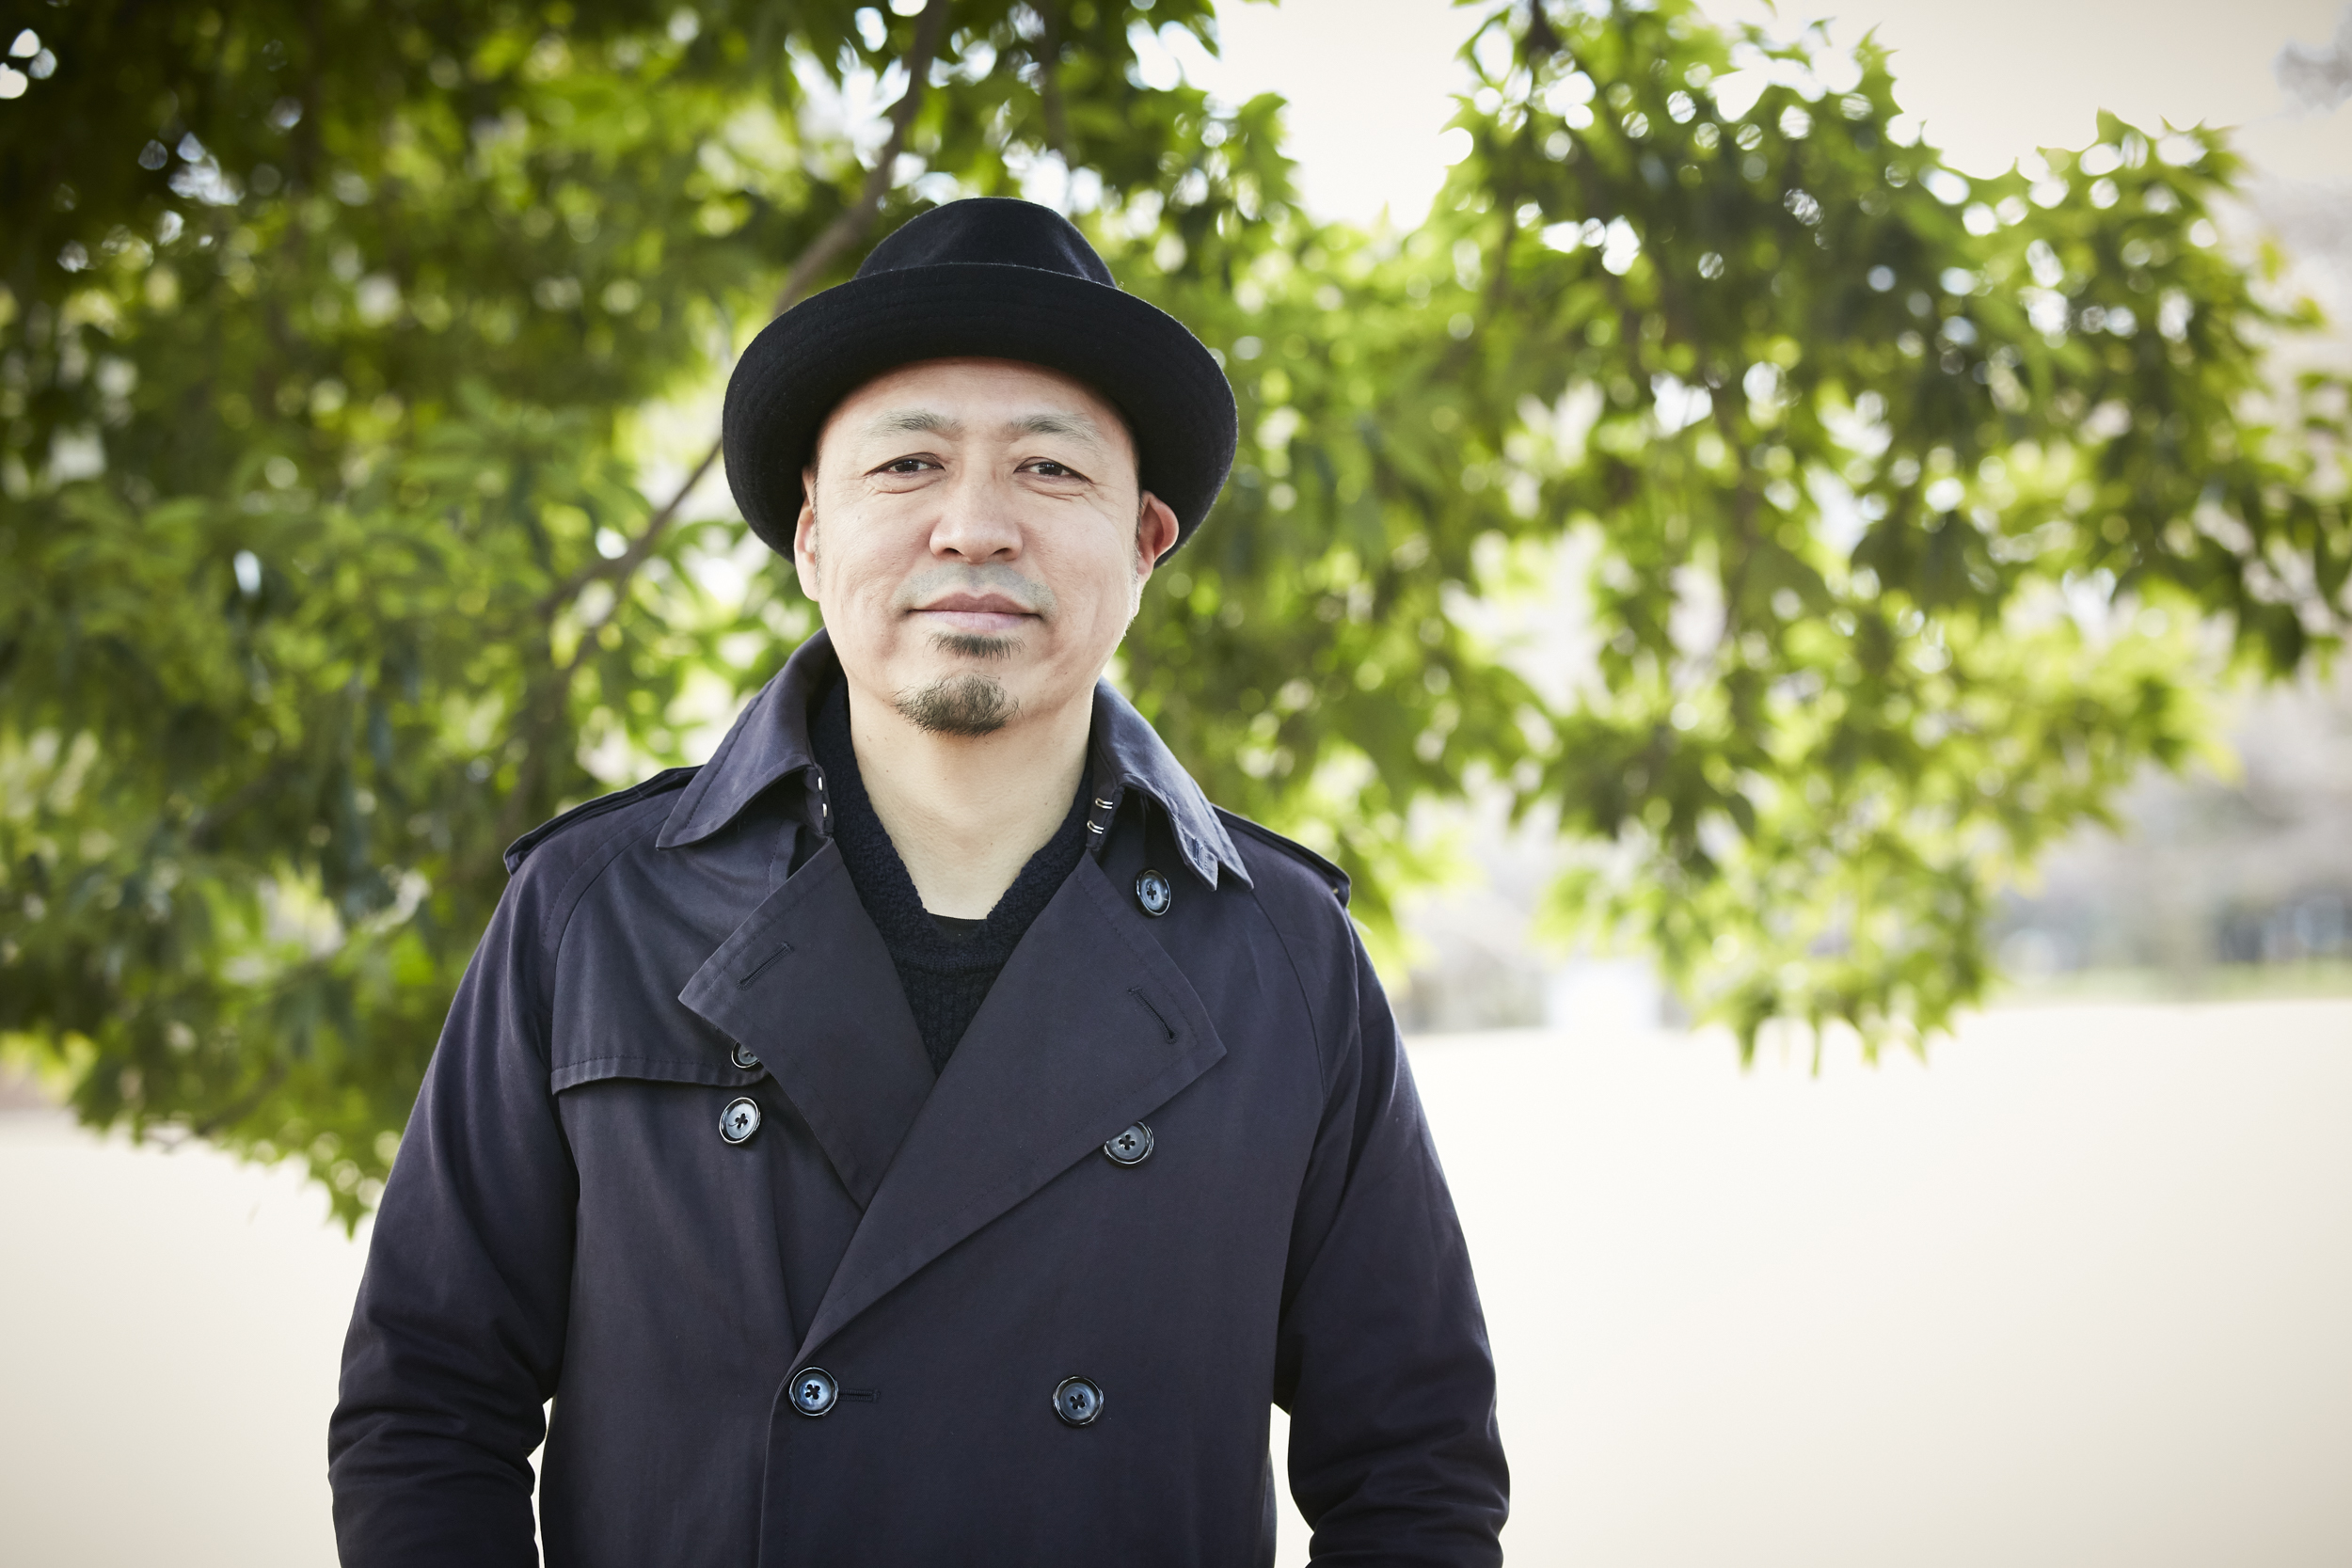 Mr. Eiji Shiromoto